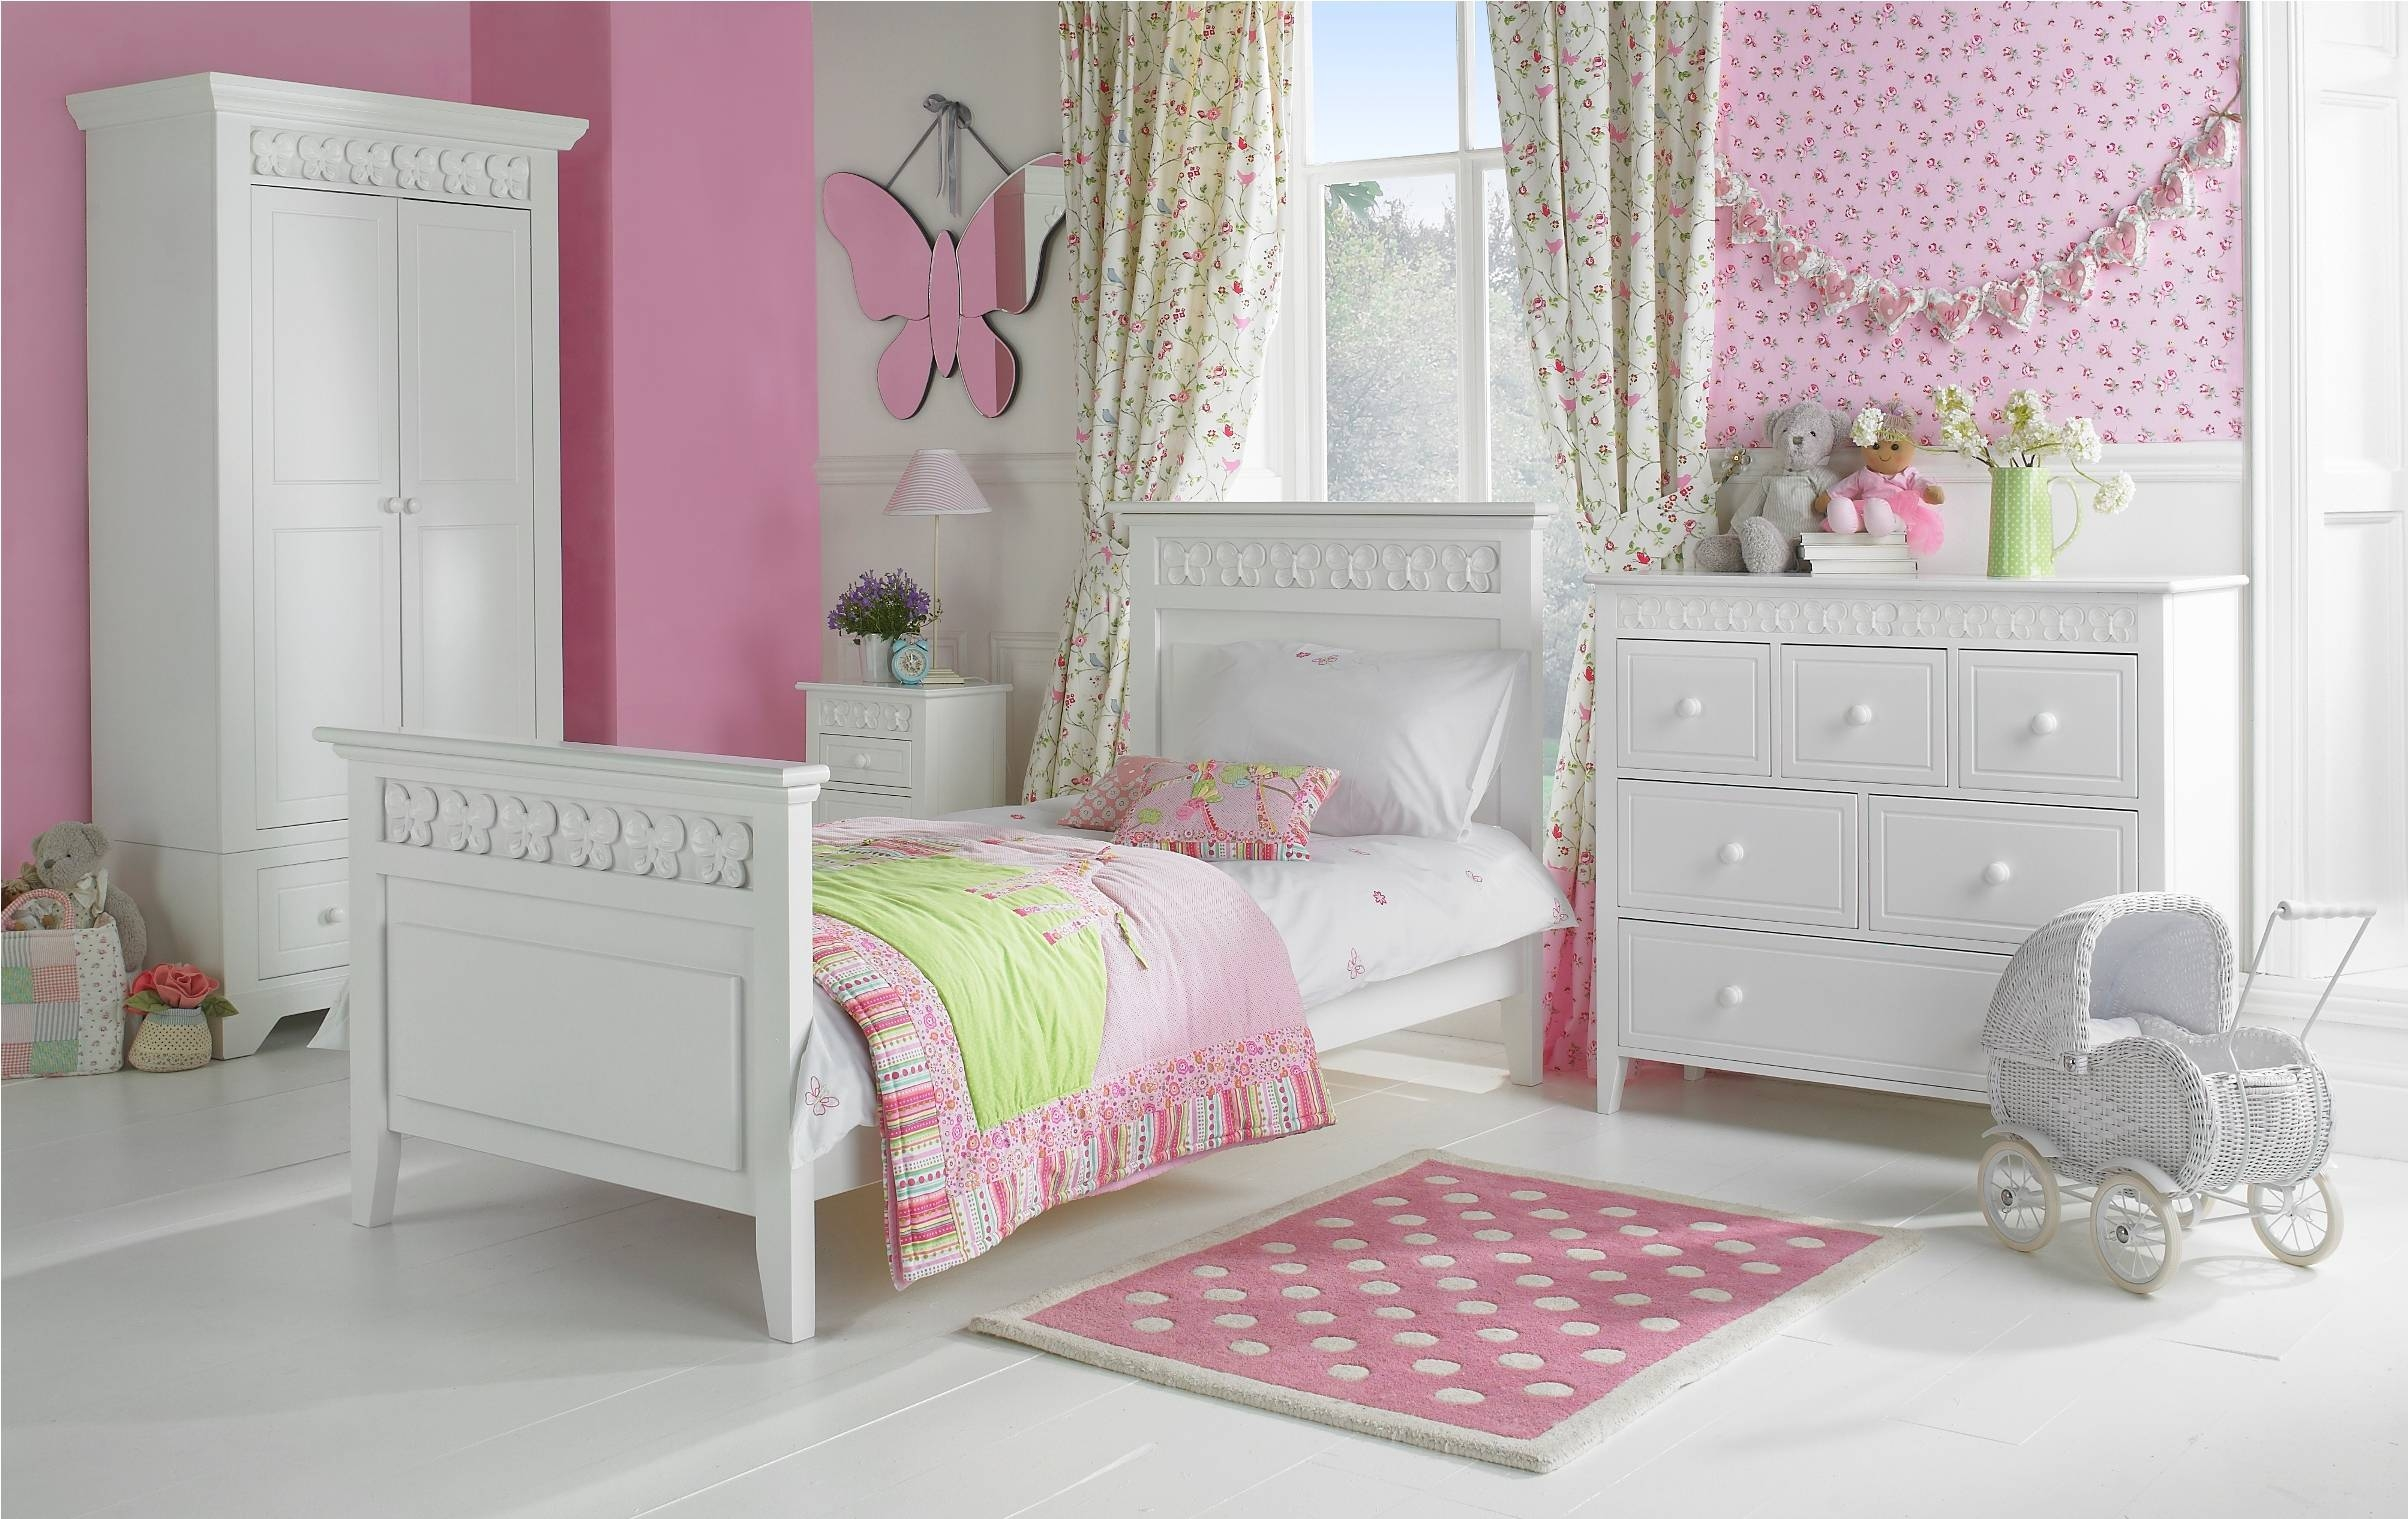 Baby Nursery. Modern Kids Bedroom With Cool Furniture: Girl Child within Childrens Pink Wardrobes (Image 2 of 30)